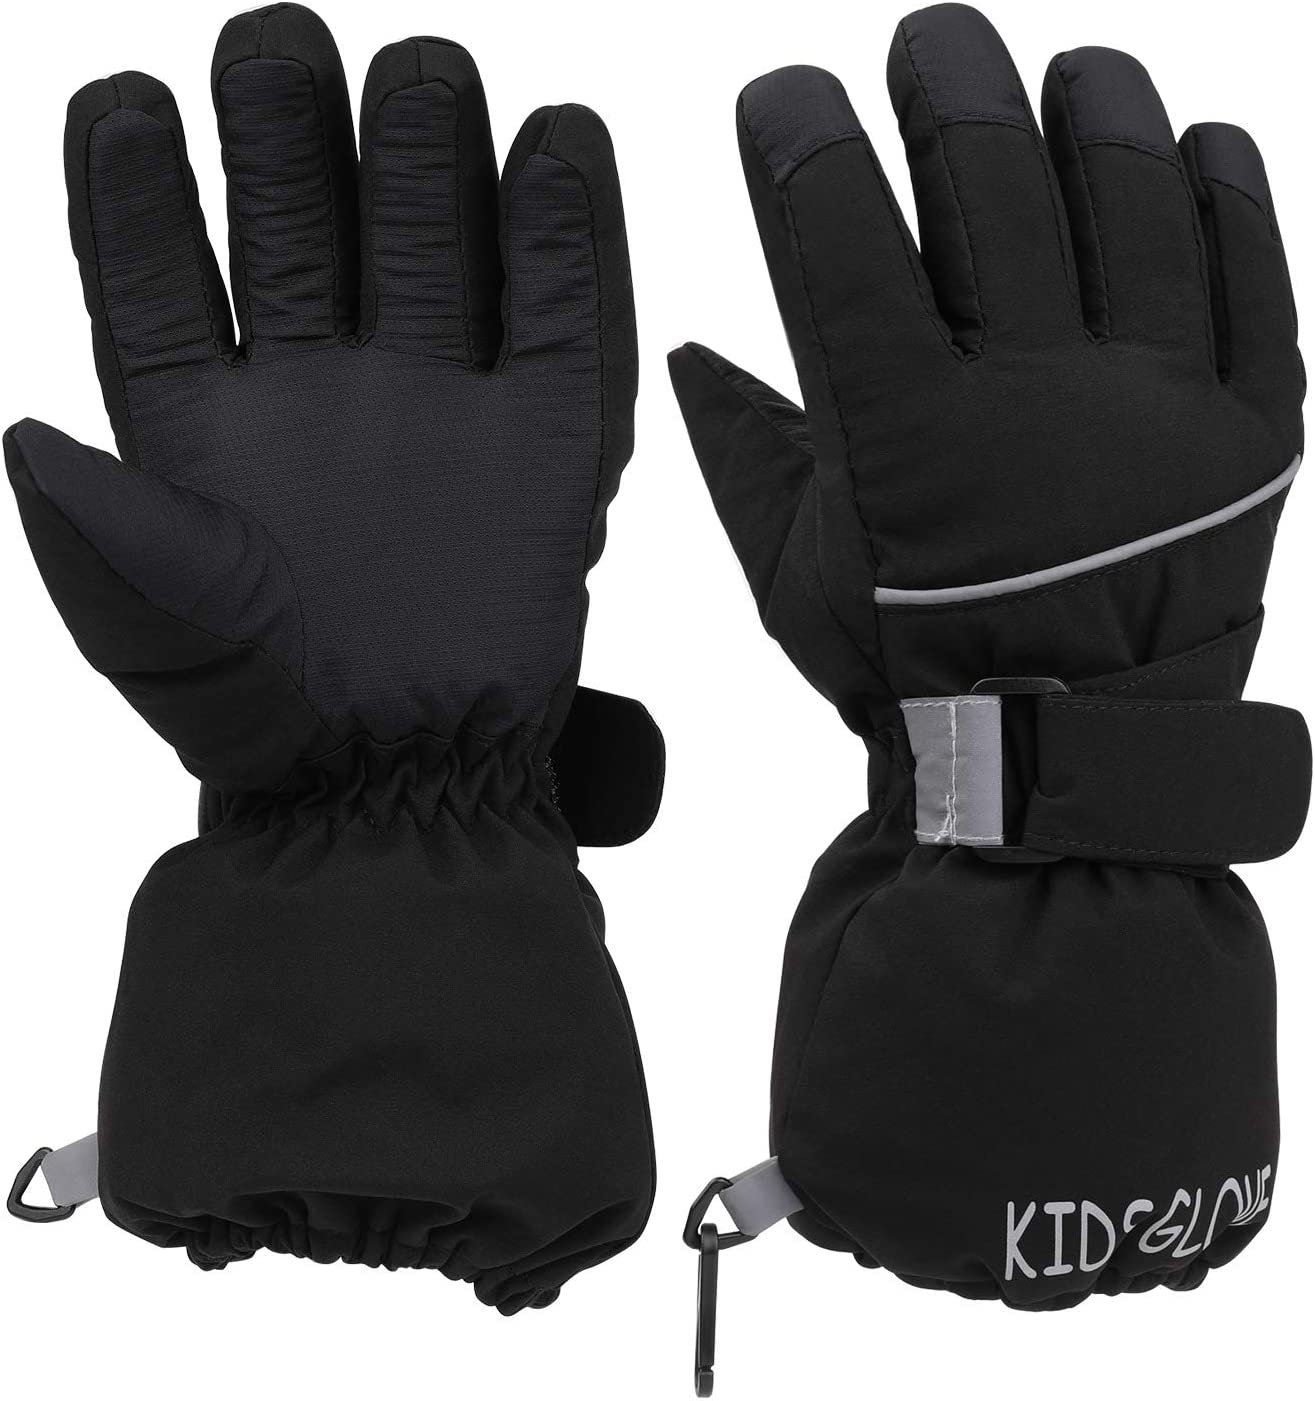 Cycling Winter Snow Mitts Outdoor Activities for Boys /& Girls Kids Ski Gloves age 3-5 Waterproof Snow Ski Mittens Windproof Cold Weather Warm Thermal Gloves for Skiing Snowboarding